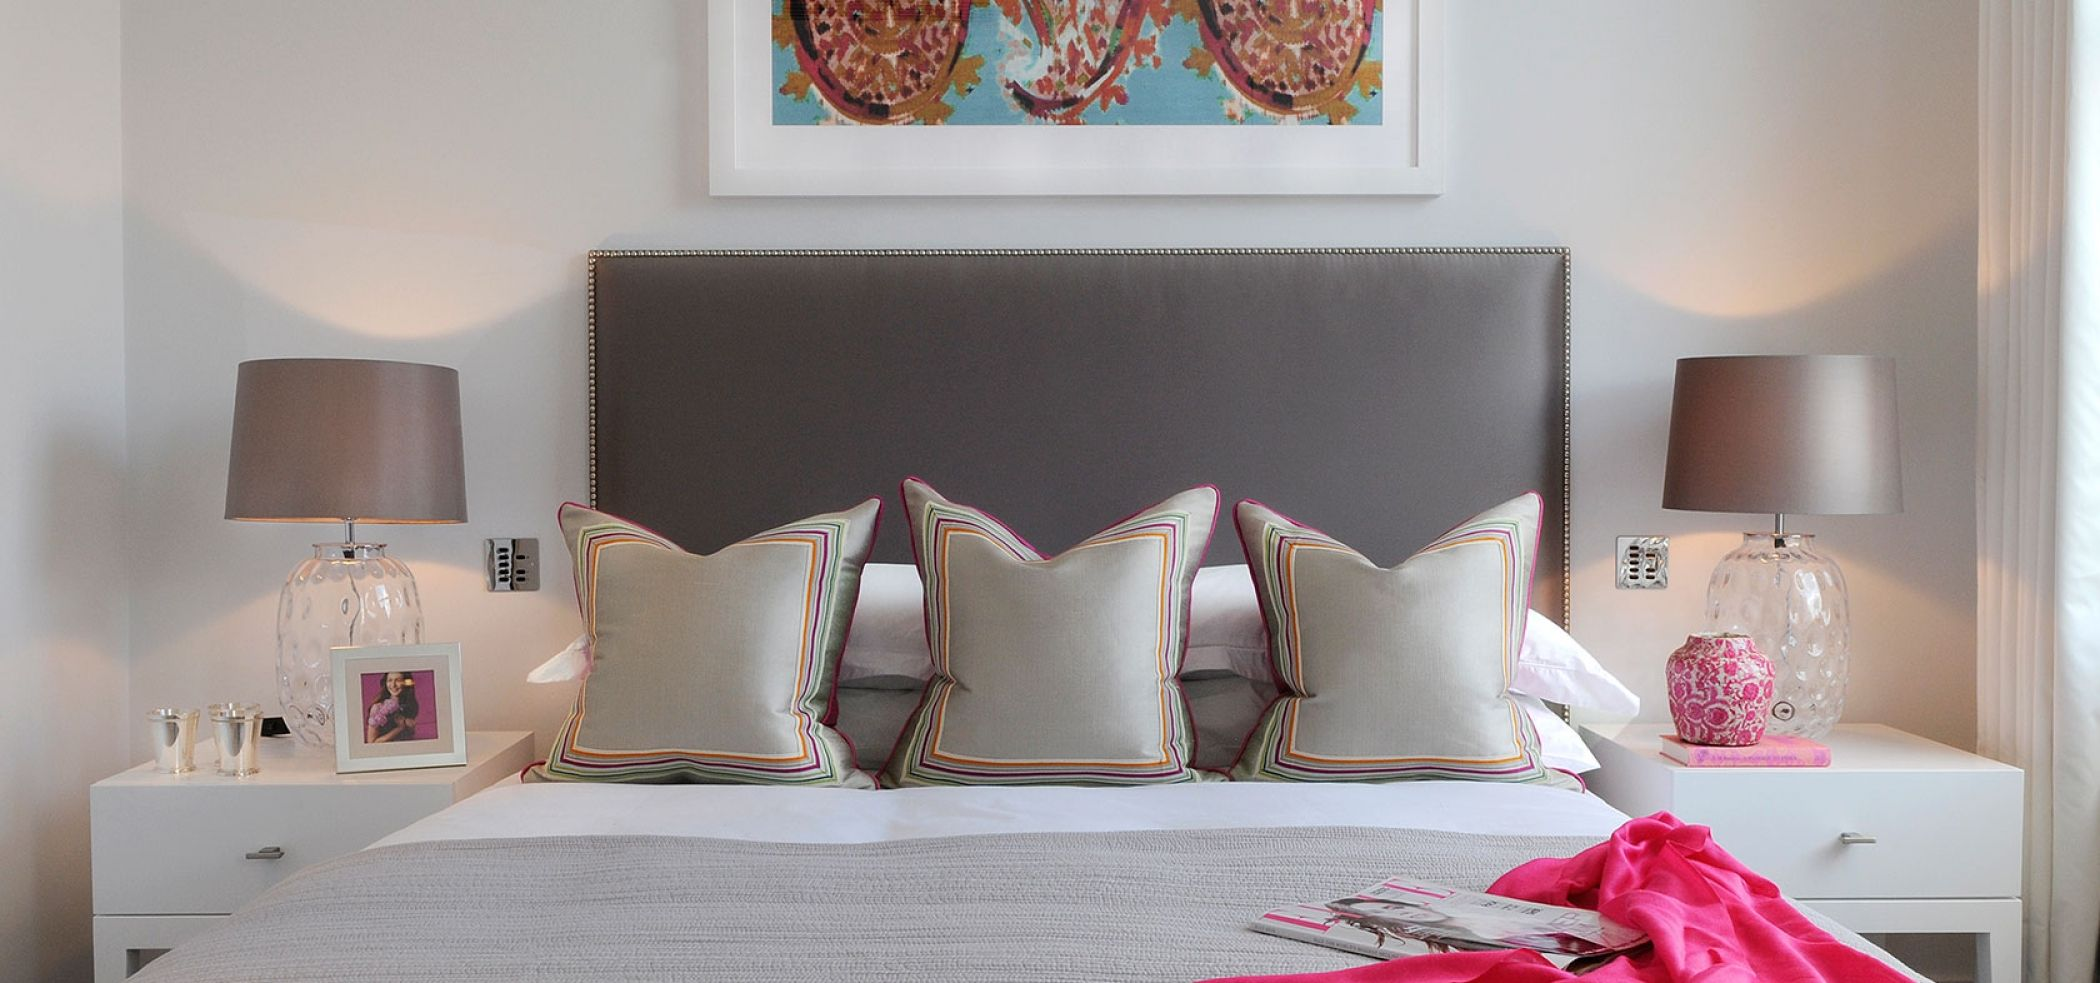 Home interior colour luxury headboard and bedroom design with glass lamps and pink colour